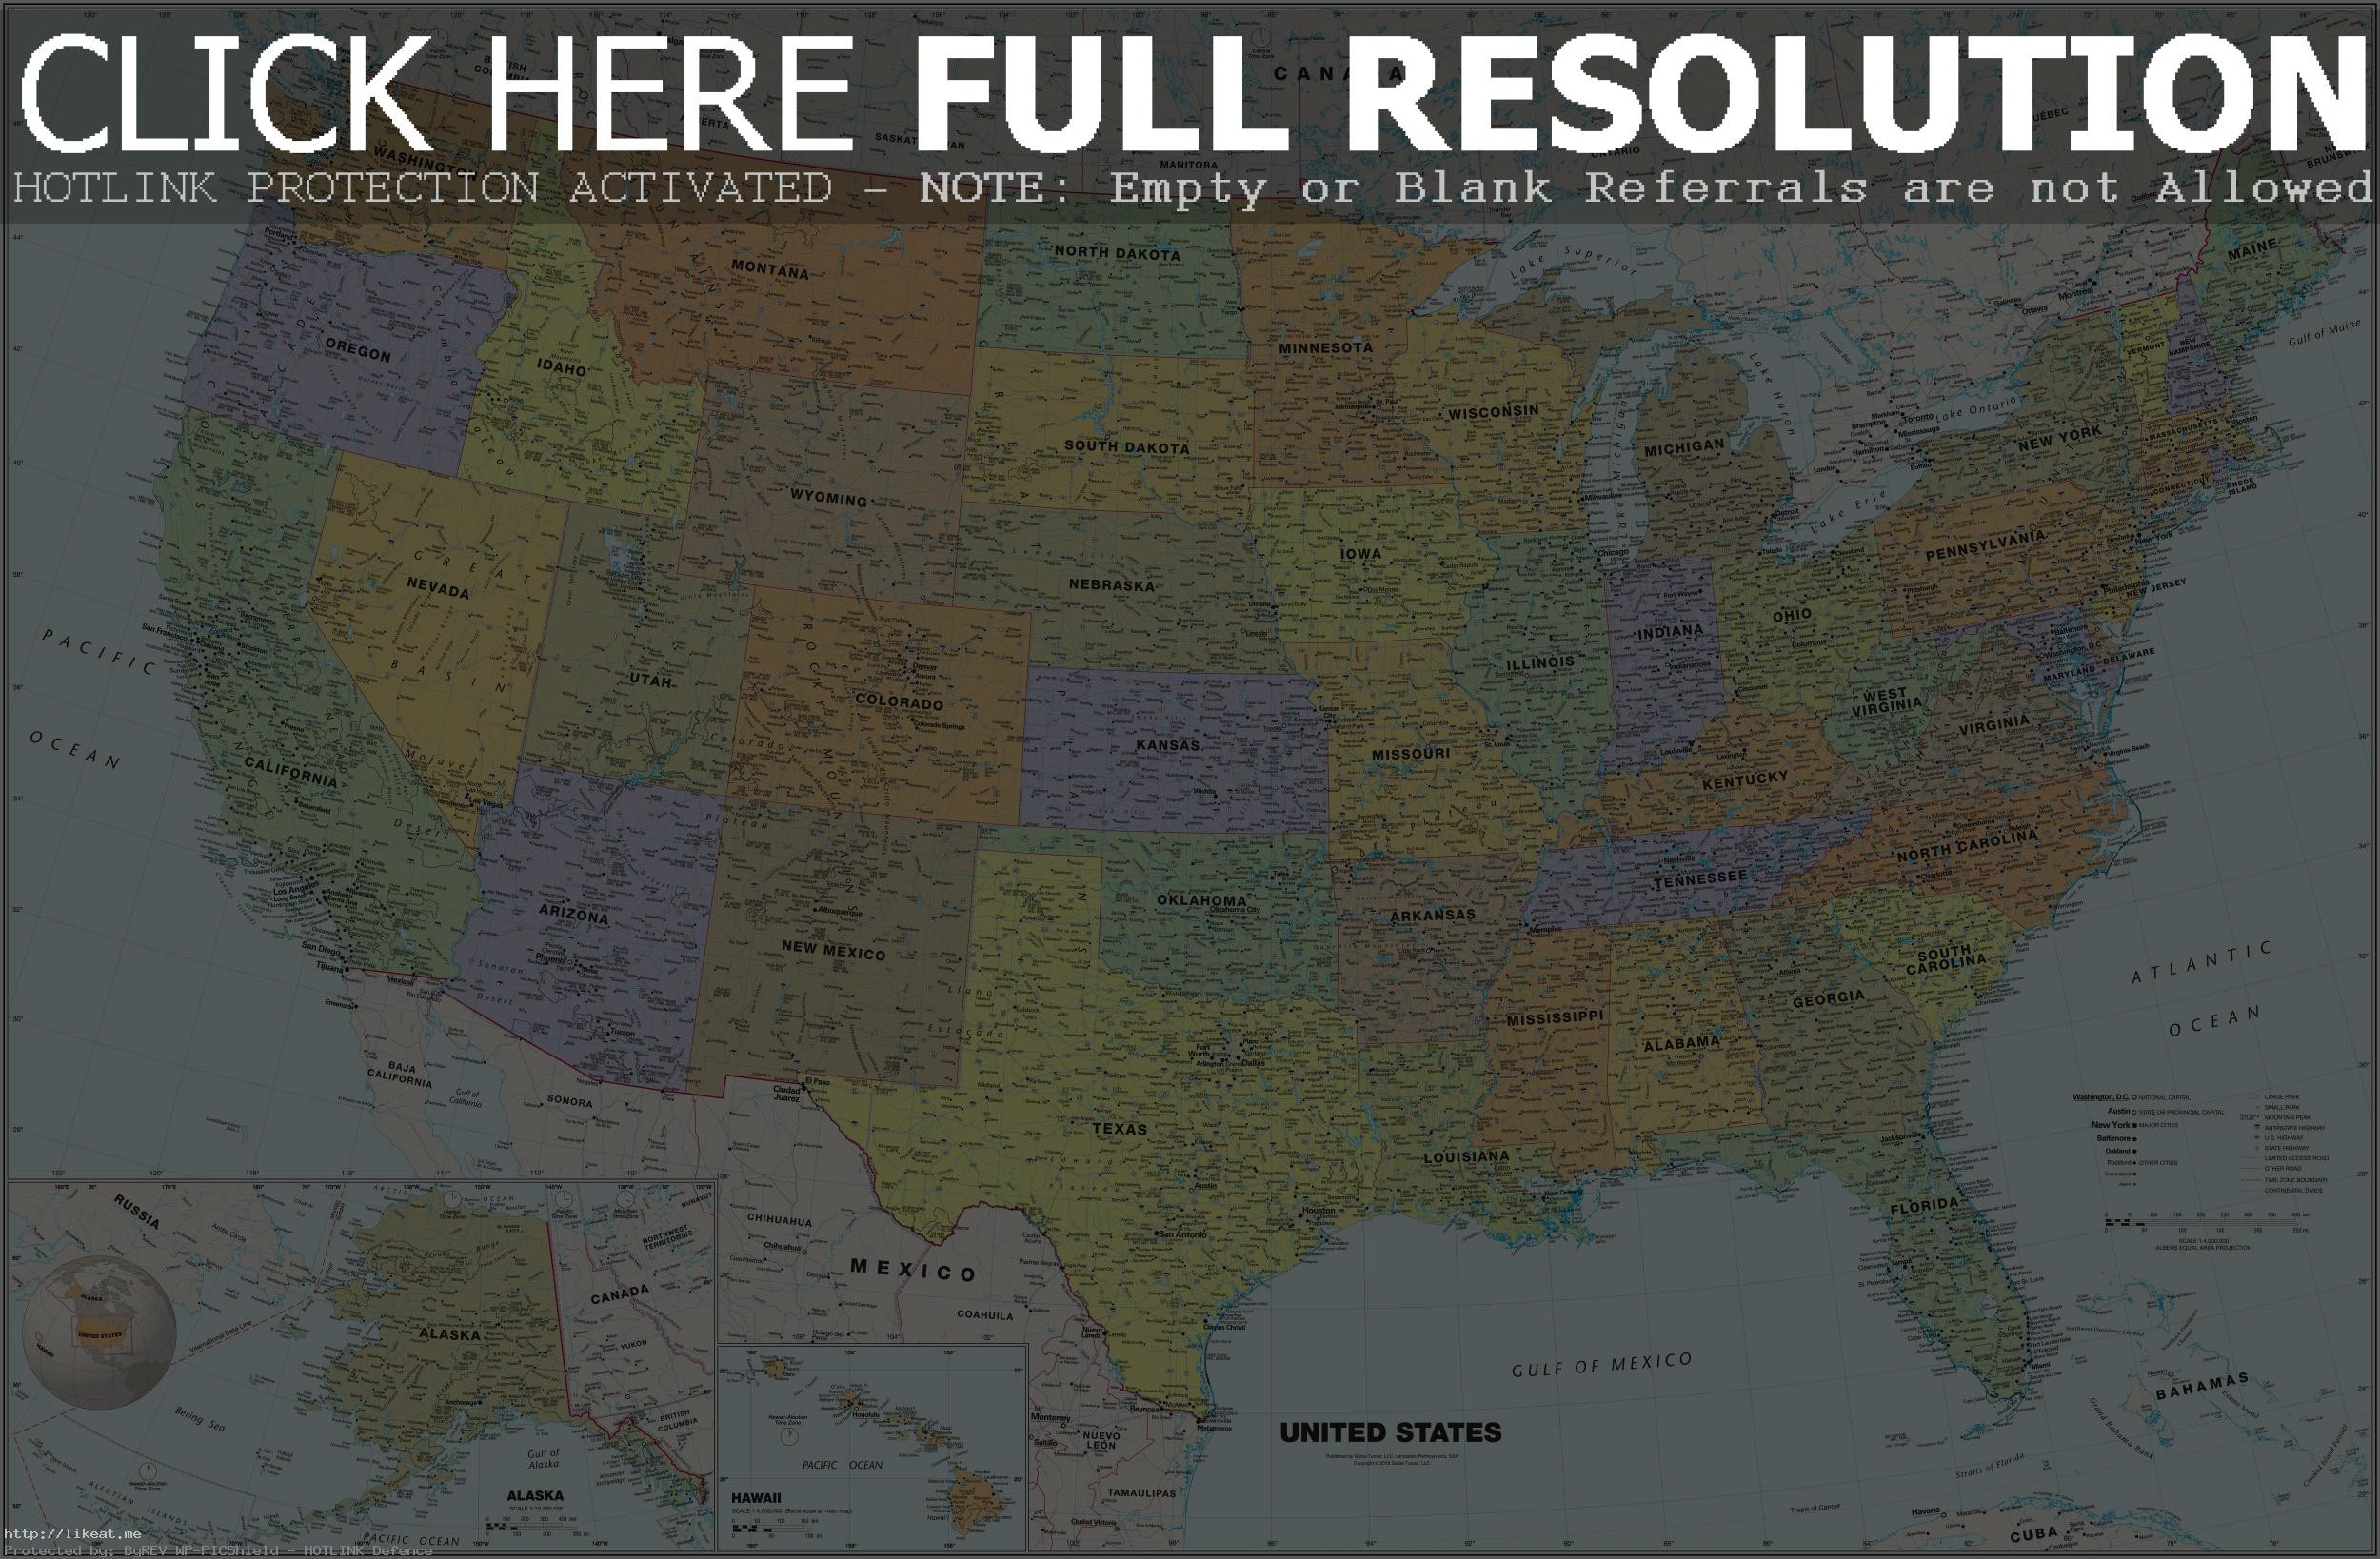 55 United States Map Desktop Android Iphone Desktop Hd Backgrounds Wallpapers 1080p 4k 2500x1638 2021